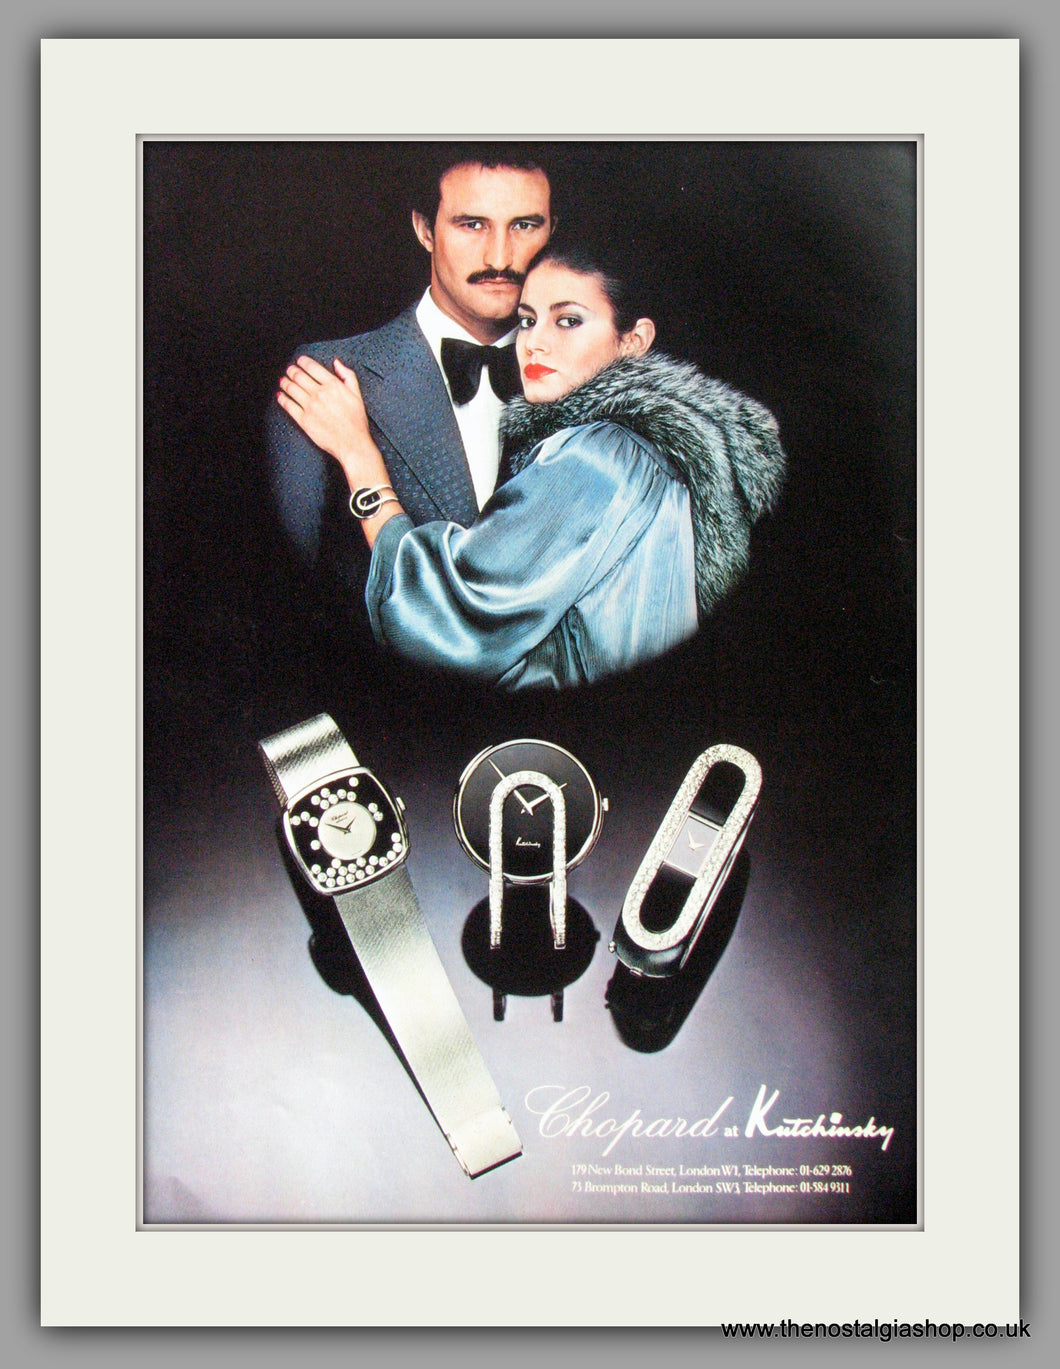 Chopard At Kutchinsky Watches. Original Advert 1977 (ref AD50116)